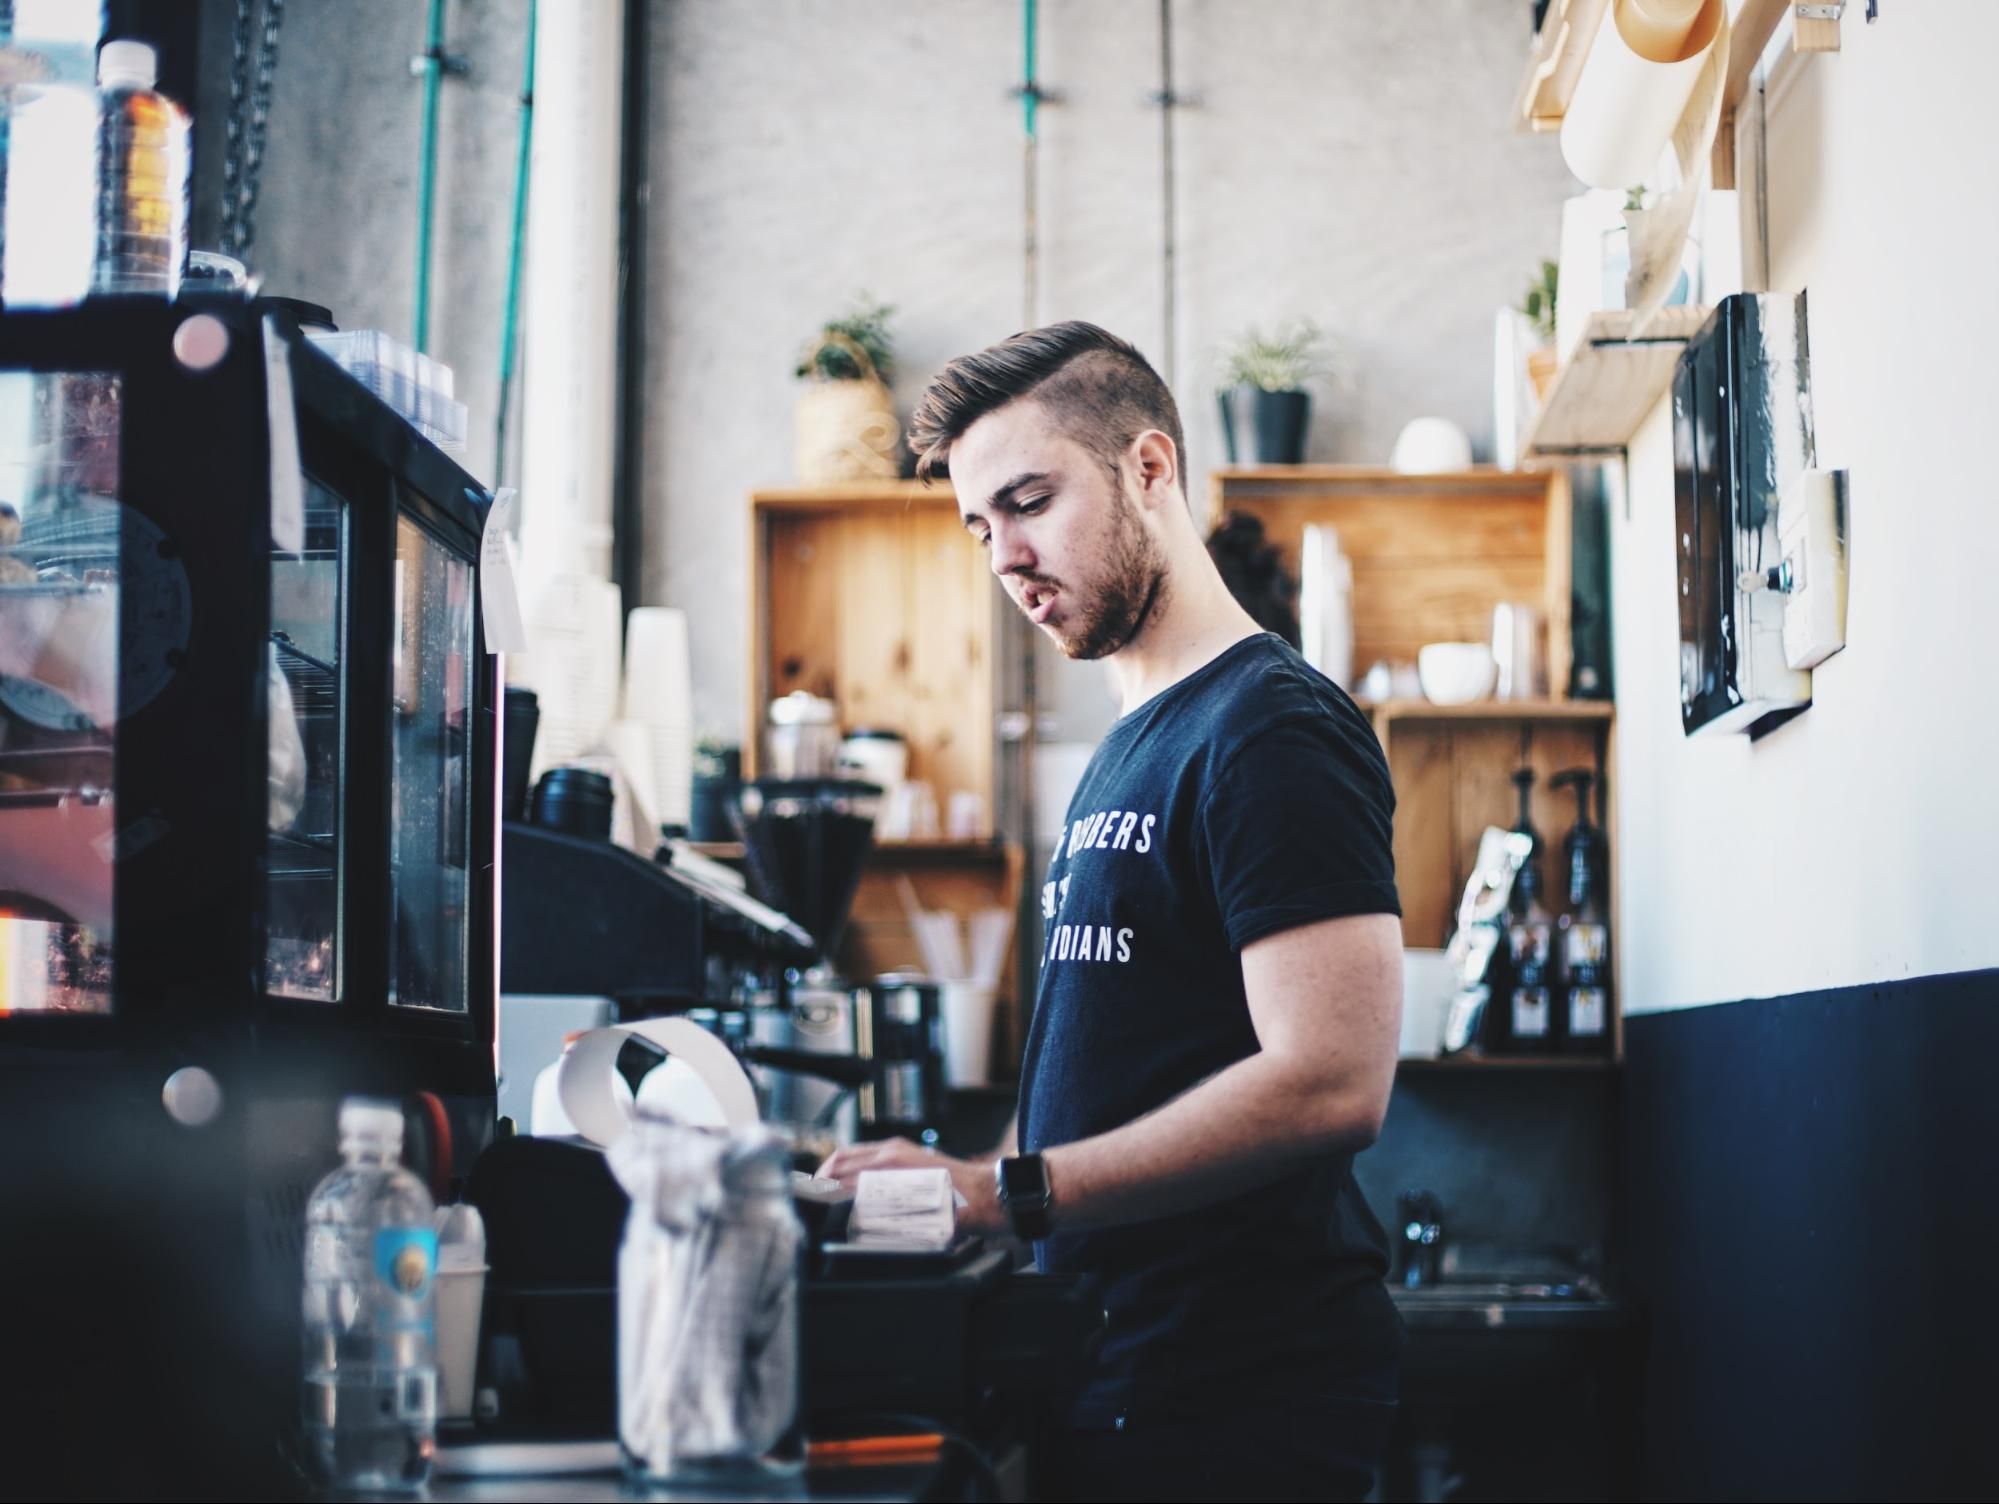 Barista working at his job